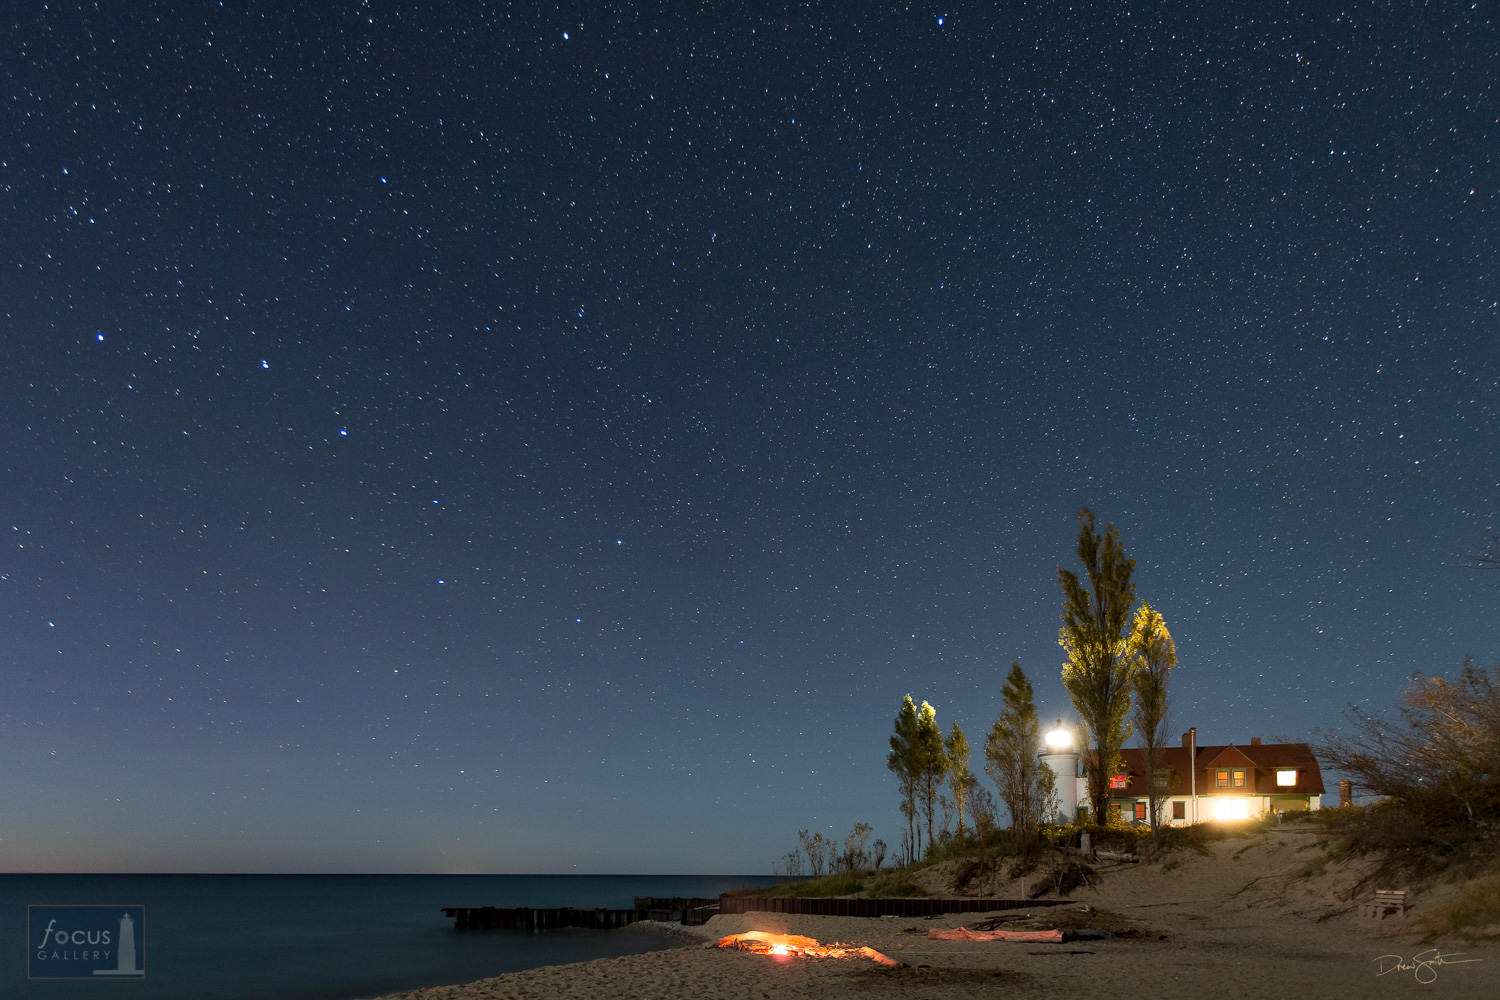 Starry sky and Big Dipper over Point Betsie Lighthouse and a fire on the beach.